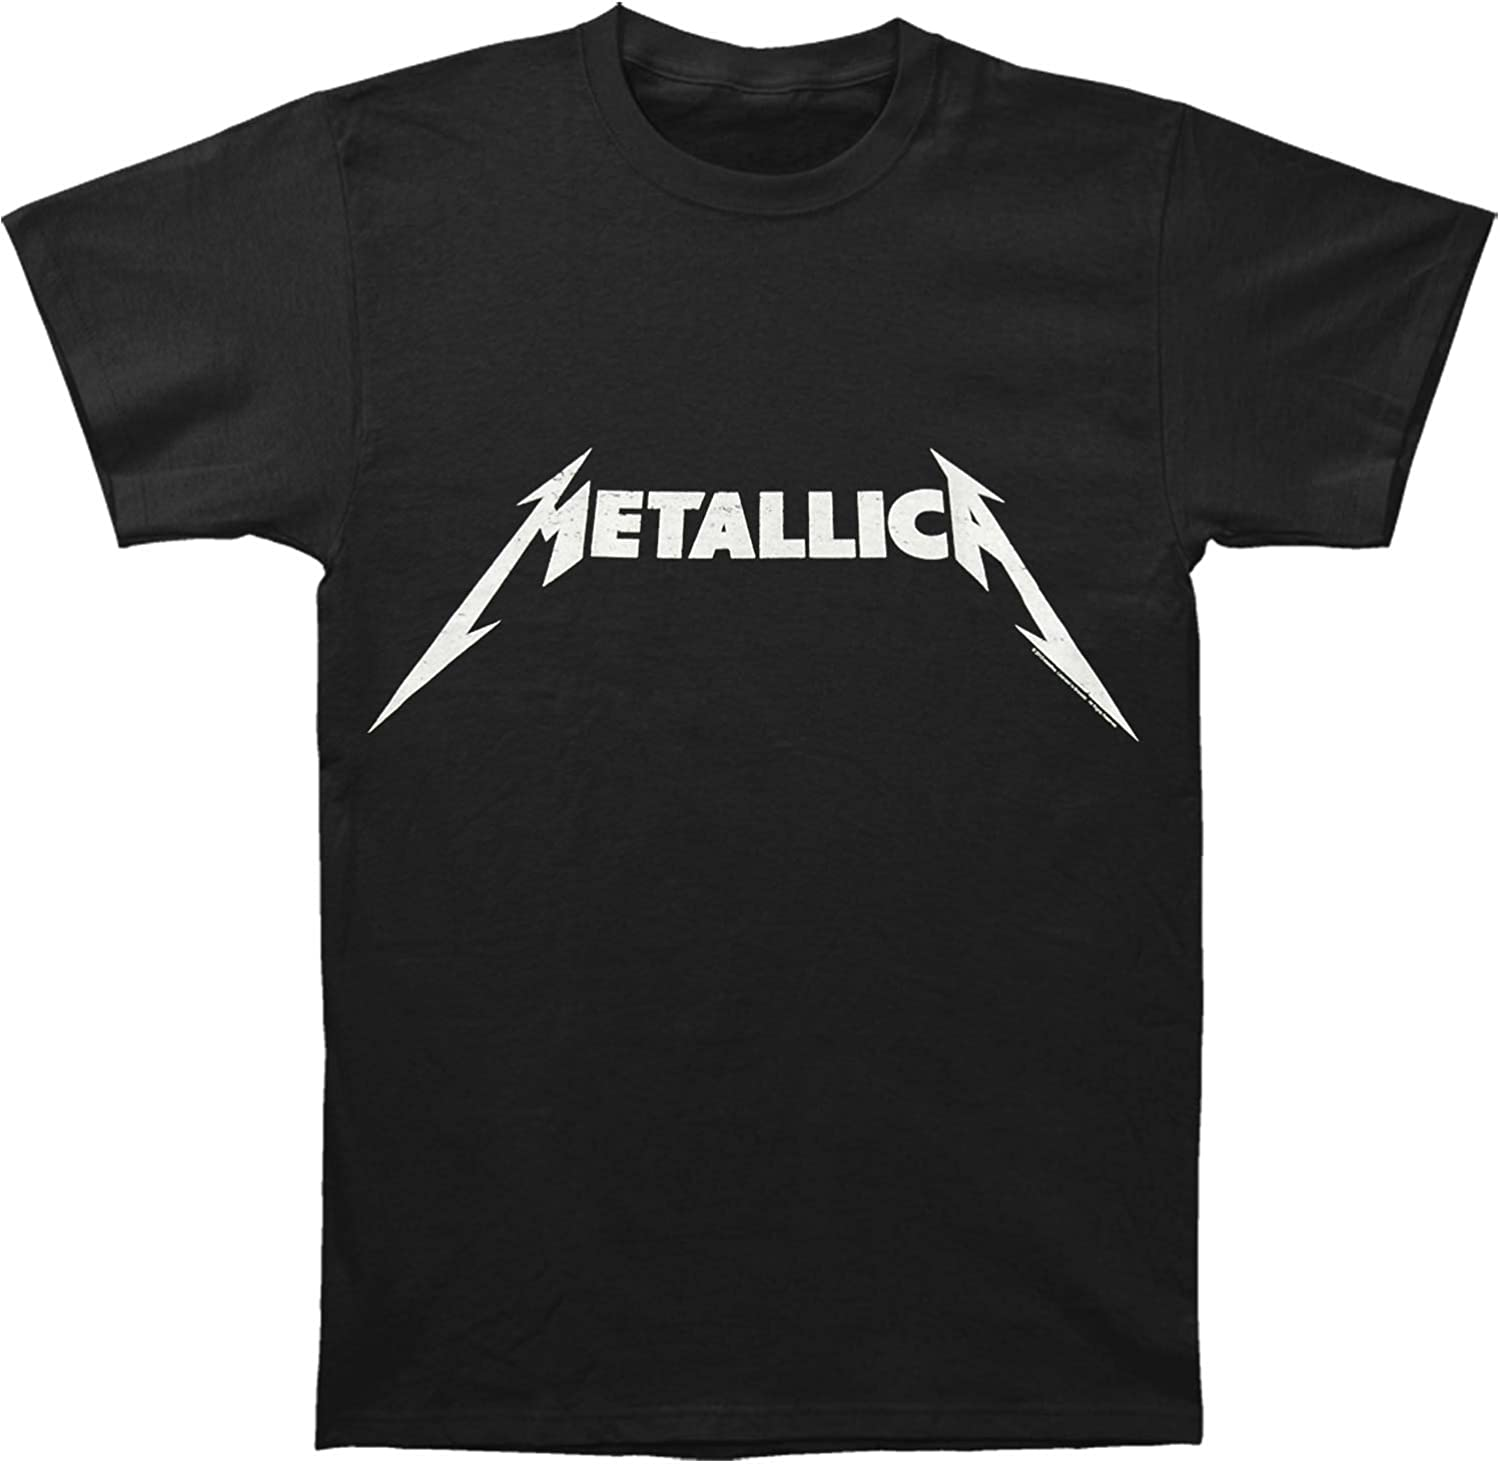 Metallica Black and White Logo Adult T-Shirt